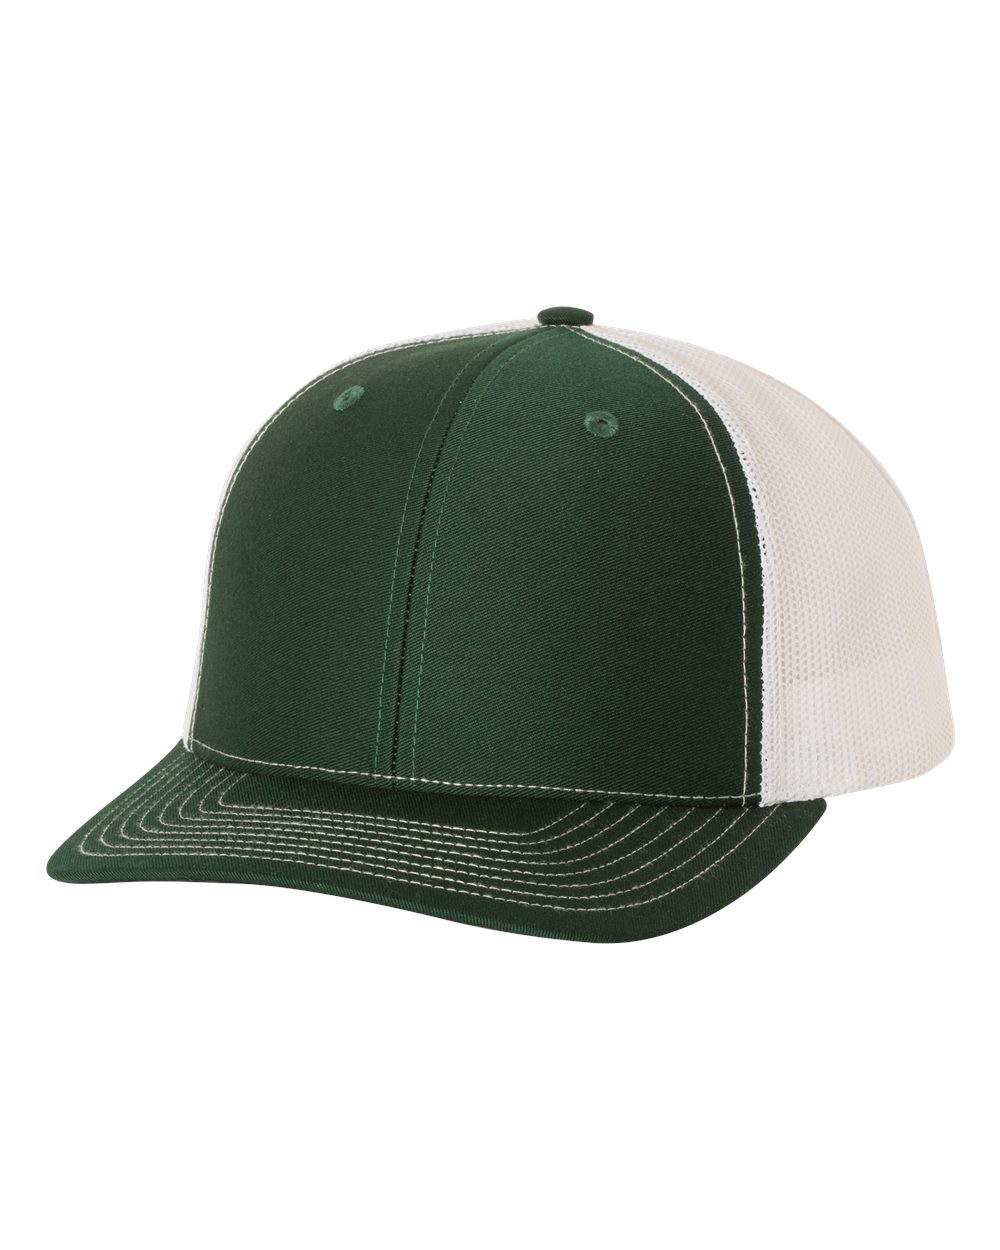 Dark Green / White